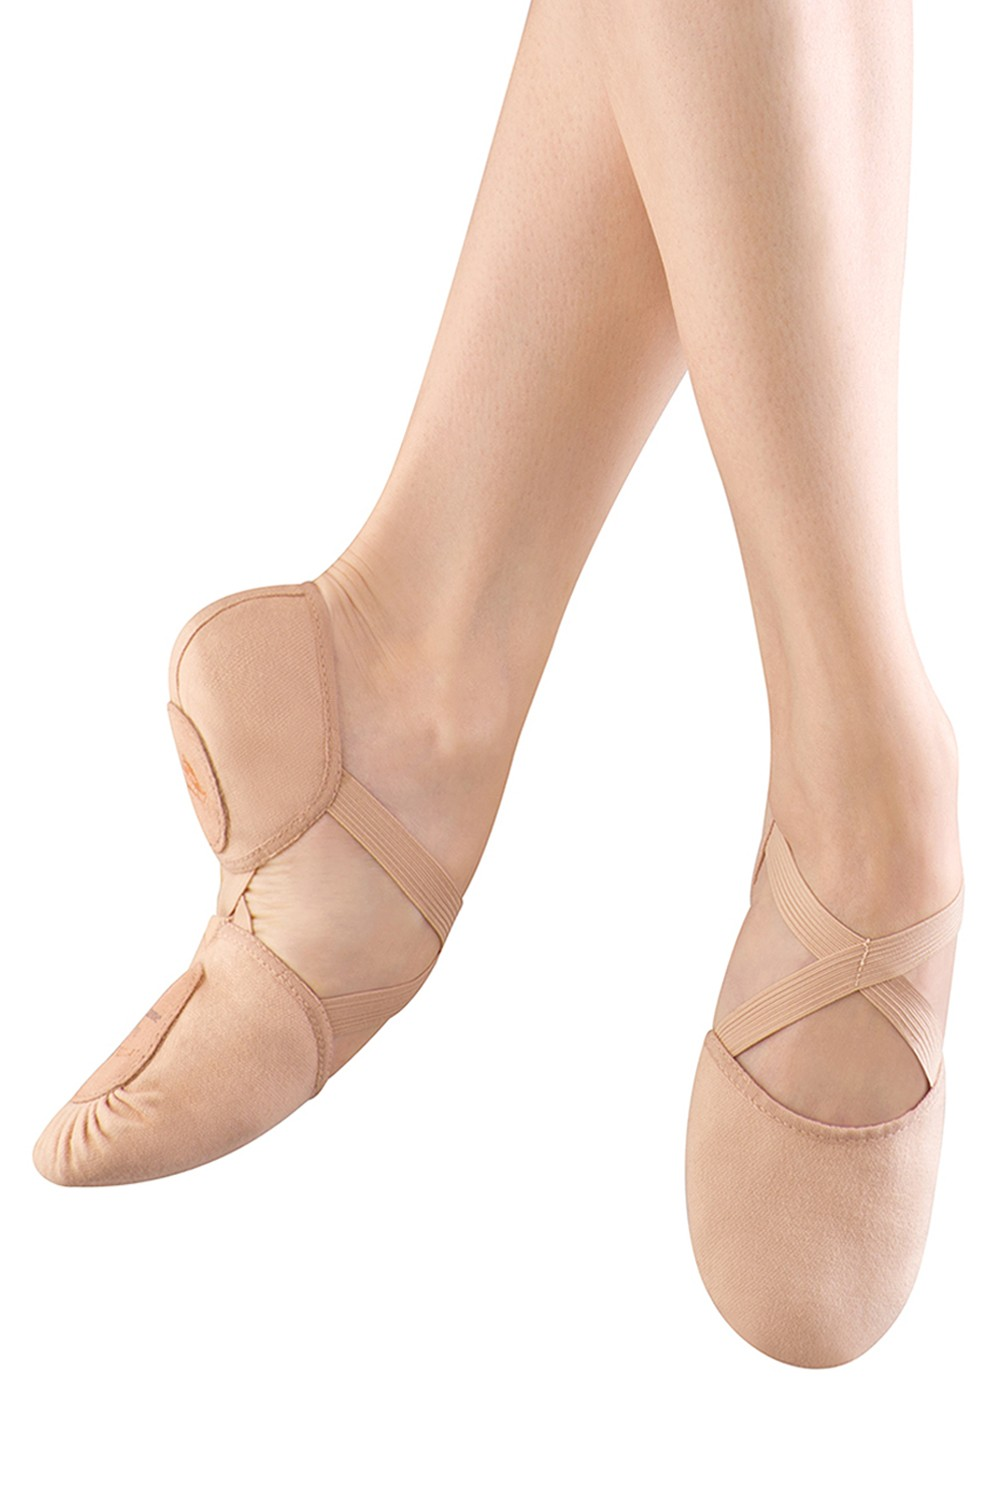 Elastosplit X Lona Women's Ballet Shoes